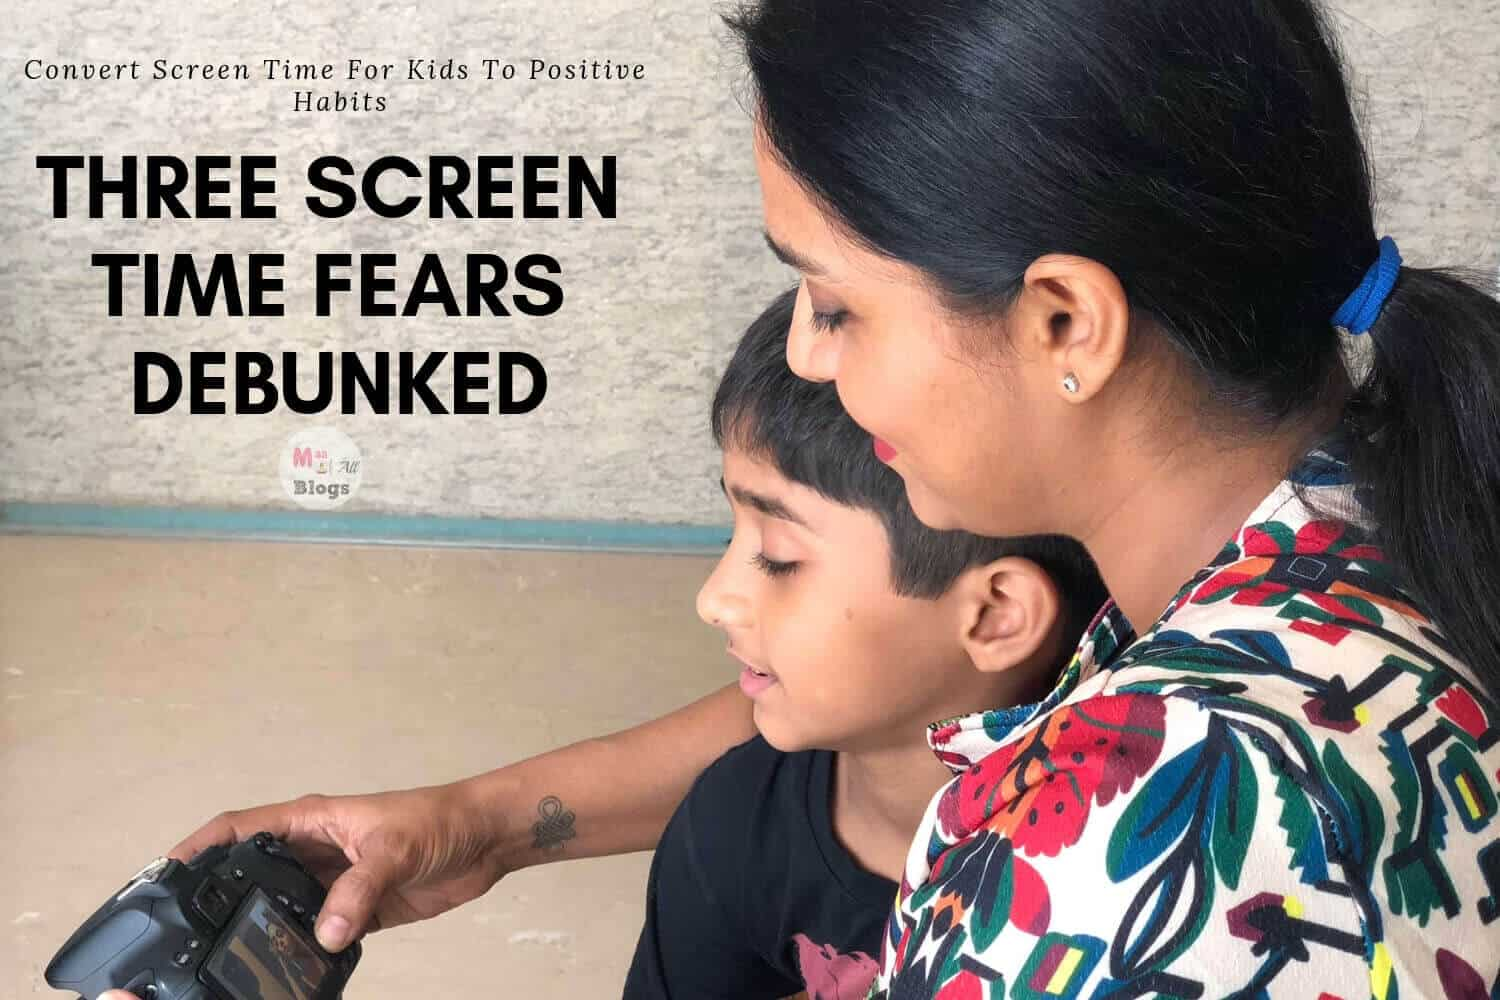 Three Screen Time Fears Debunked